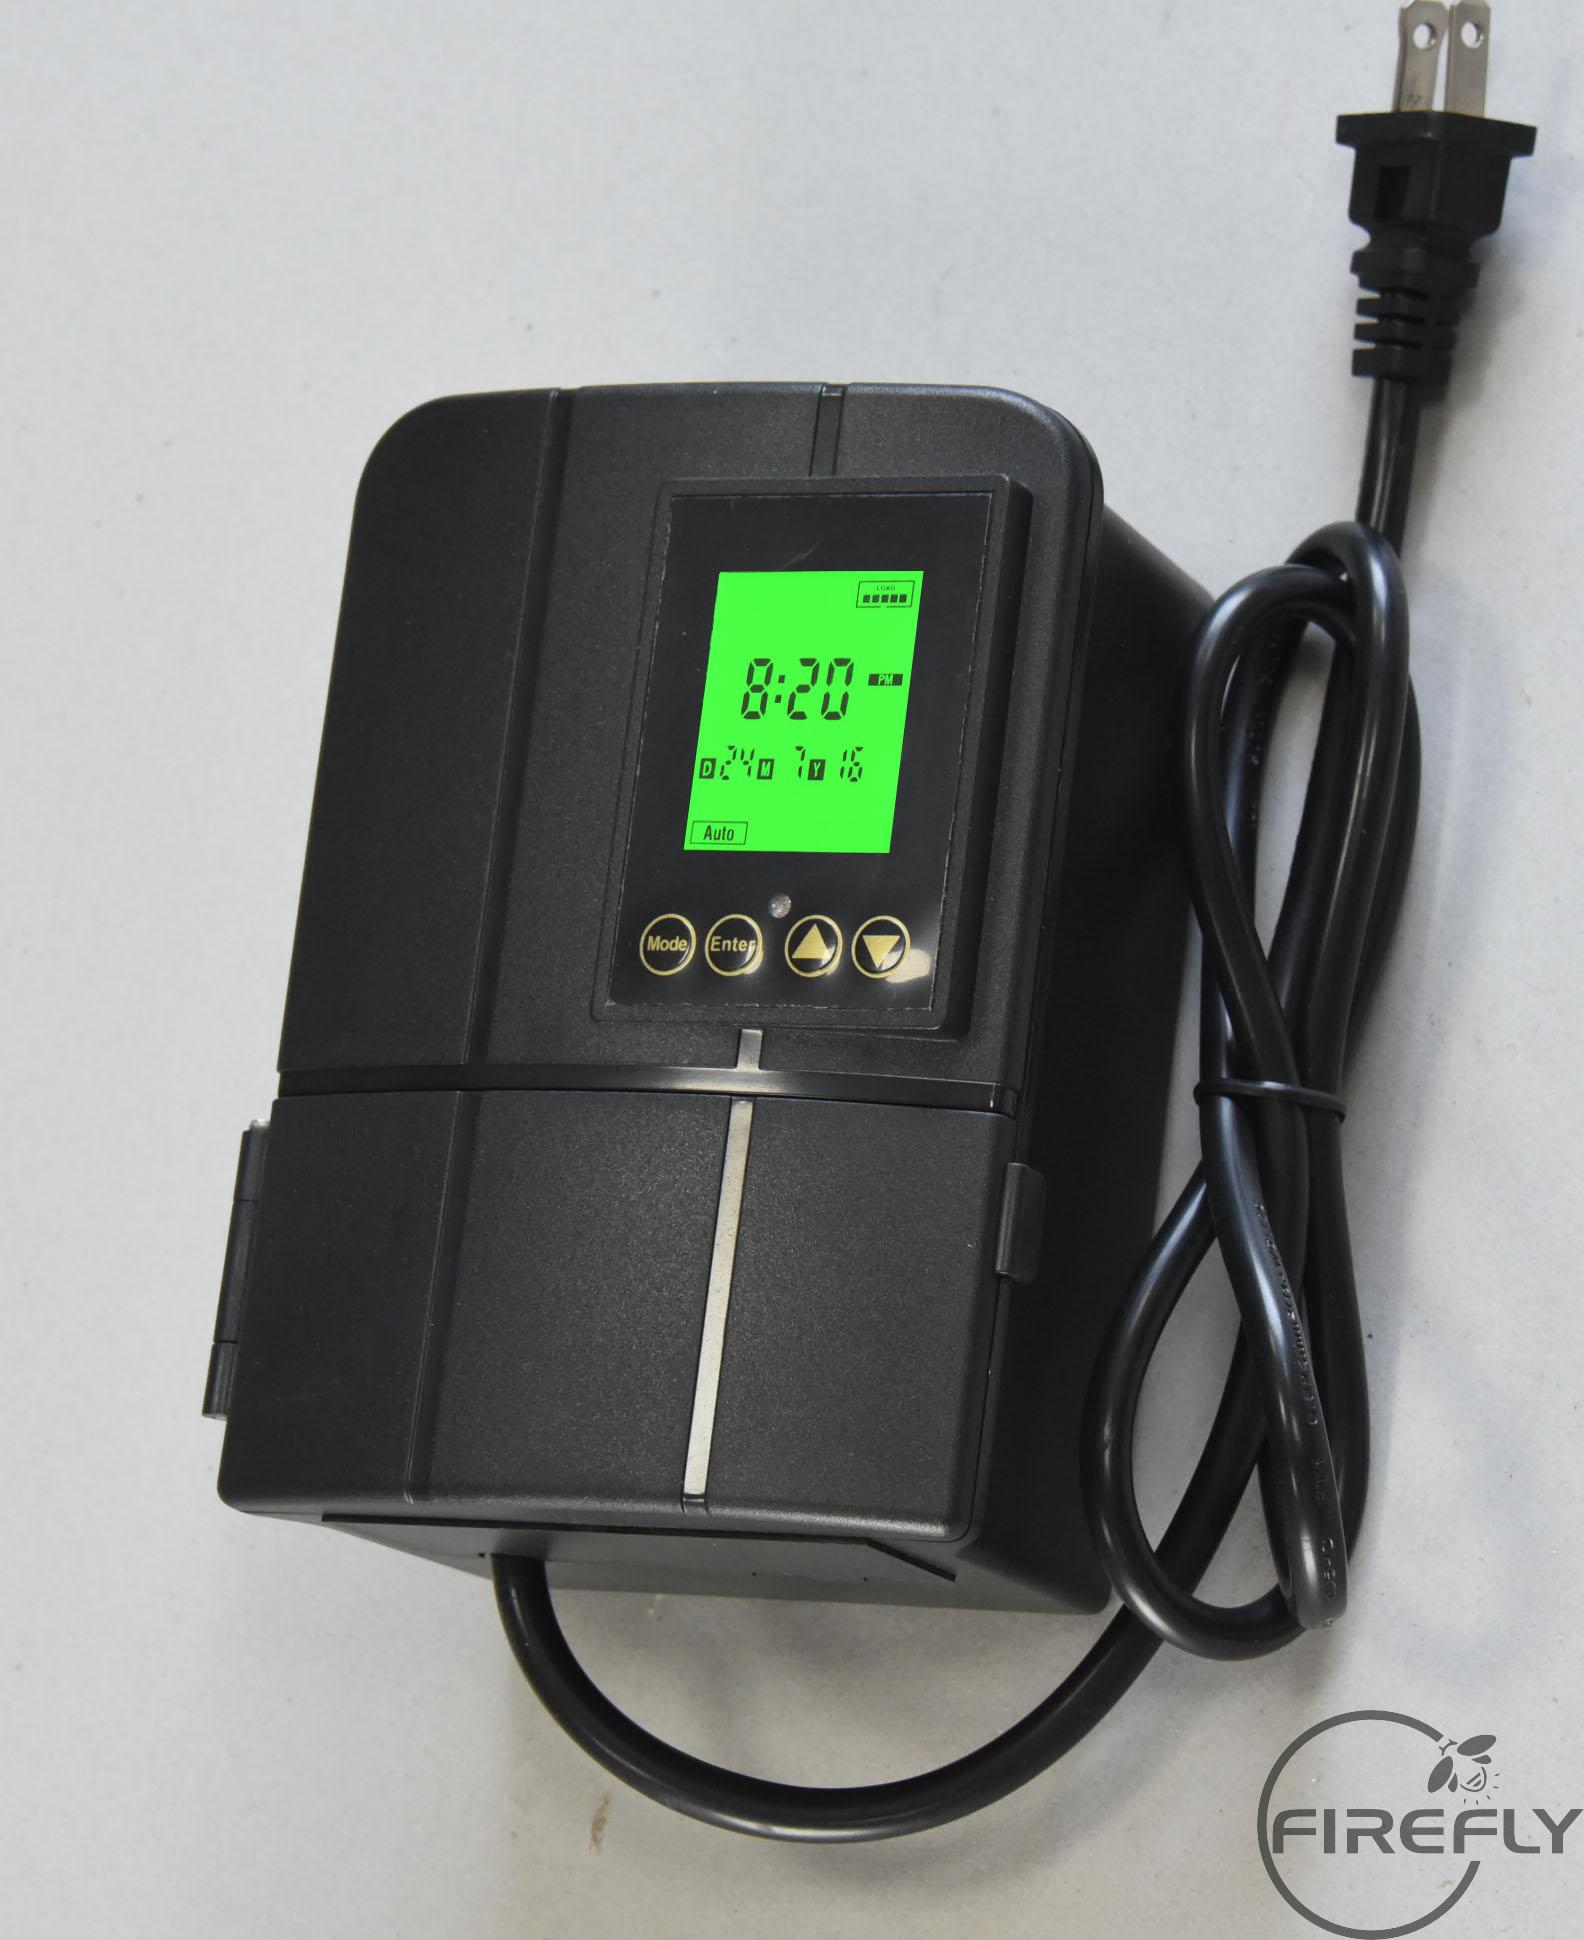 E000 1715 dusk to dawn weatherproof transformer for outdoor e000 1715 dusk to dawn weatherproof transformer for outdoor landscape lighting with astronomical timer and aloadofball Images